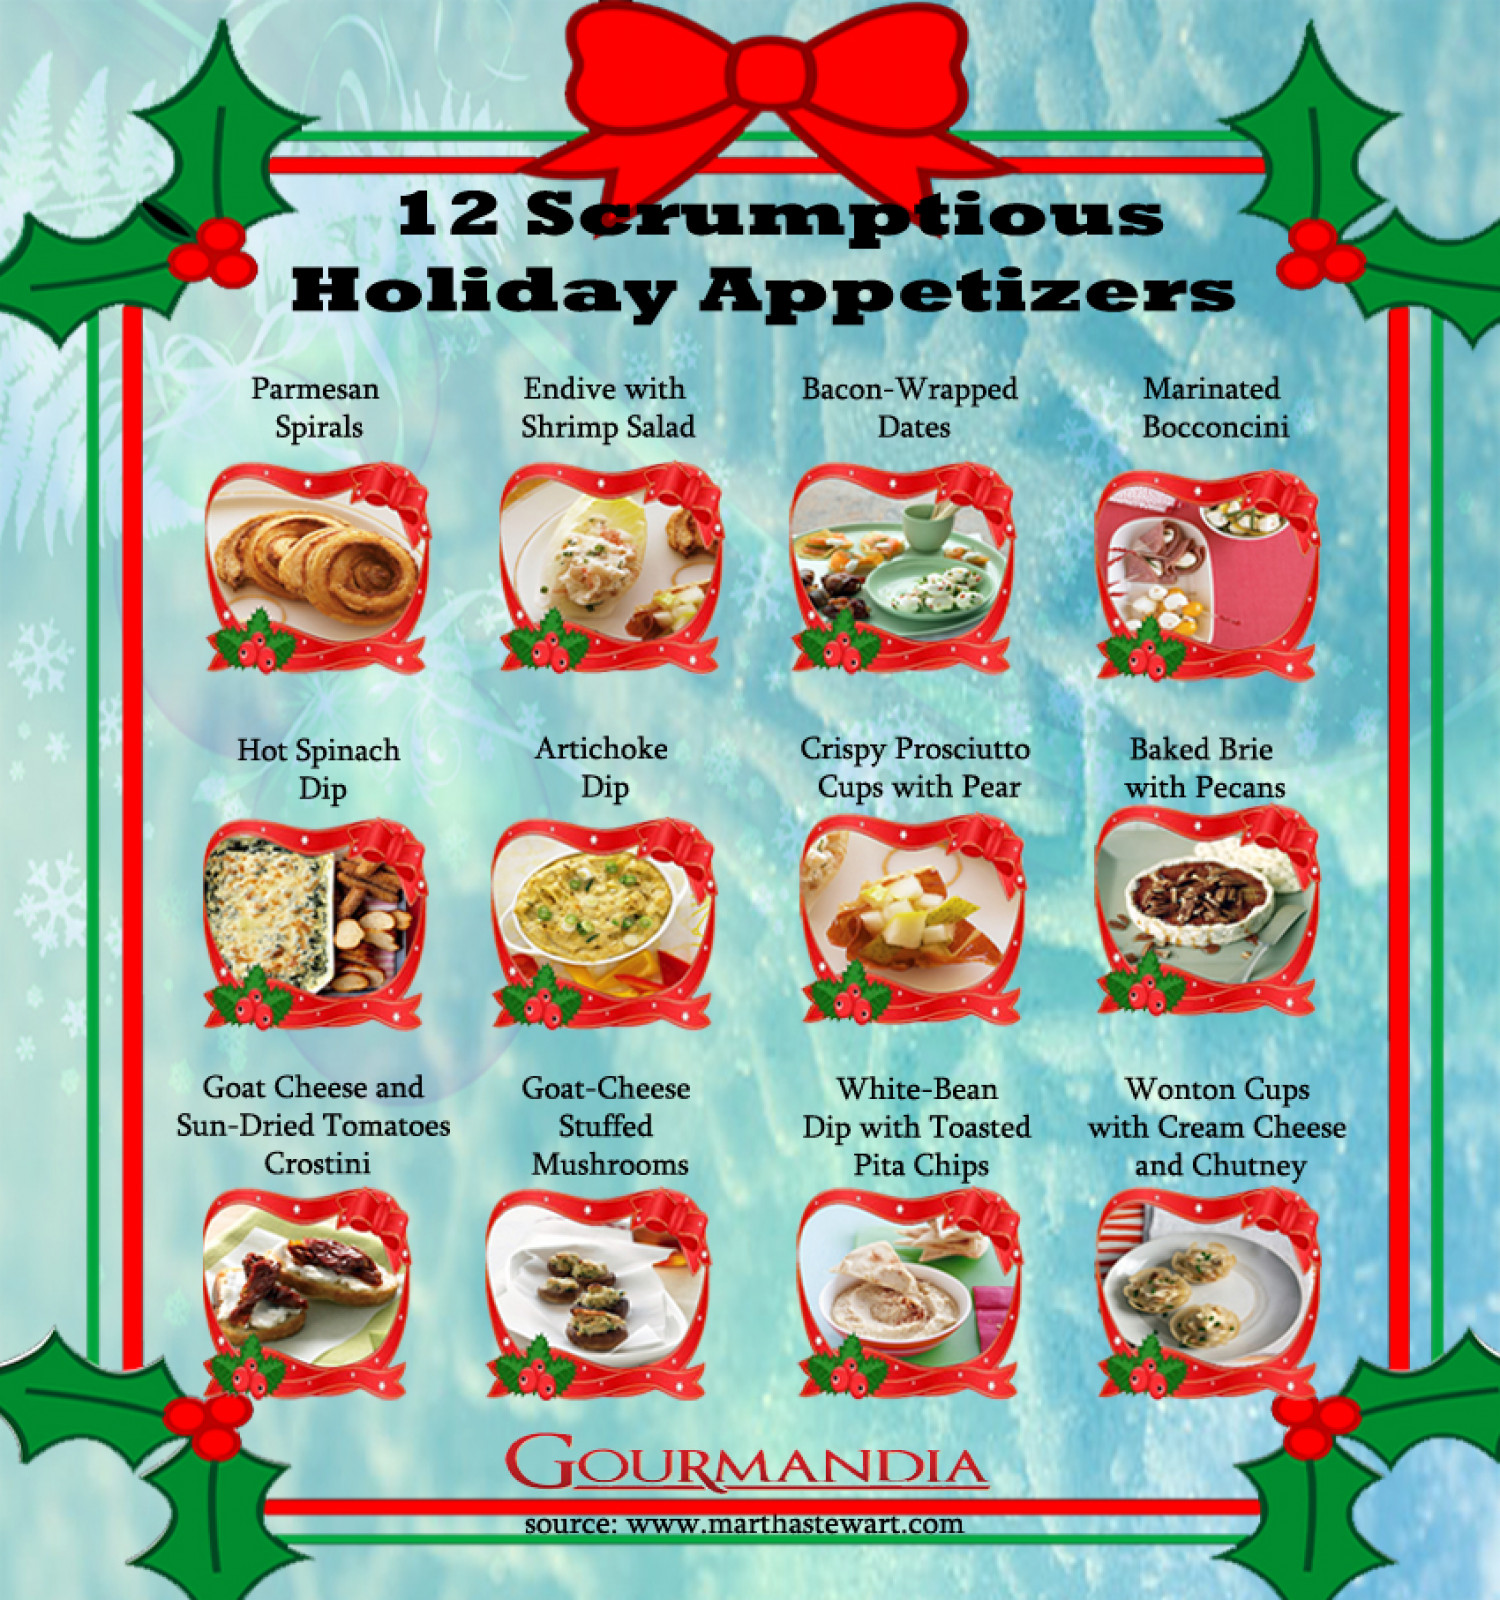 12 Scrumptious Holiday Appetizers   Infographic